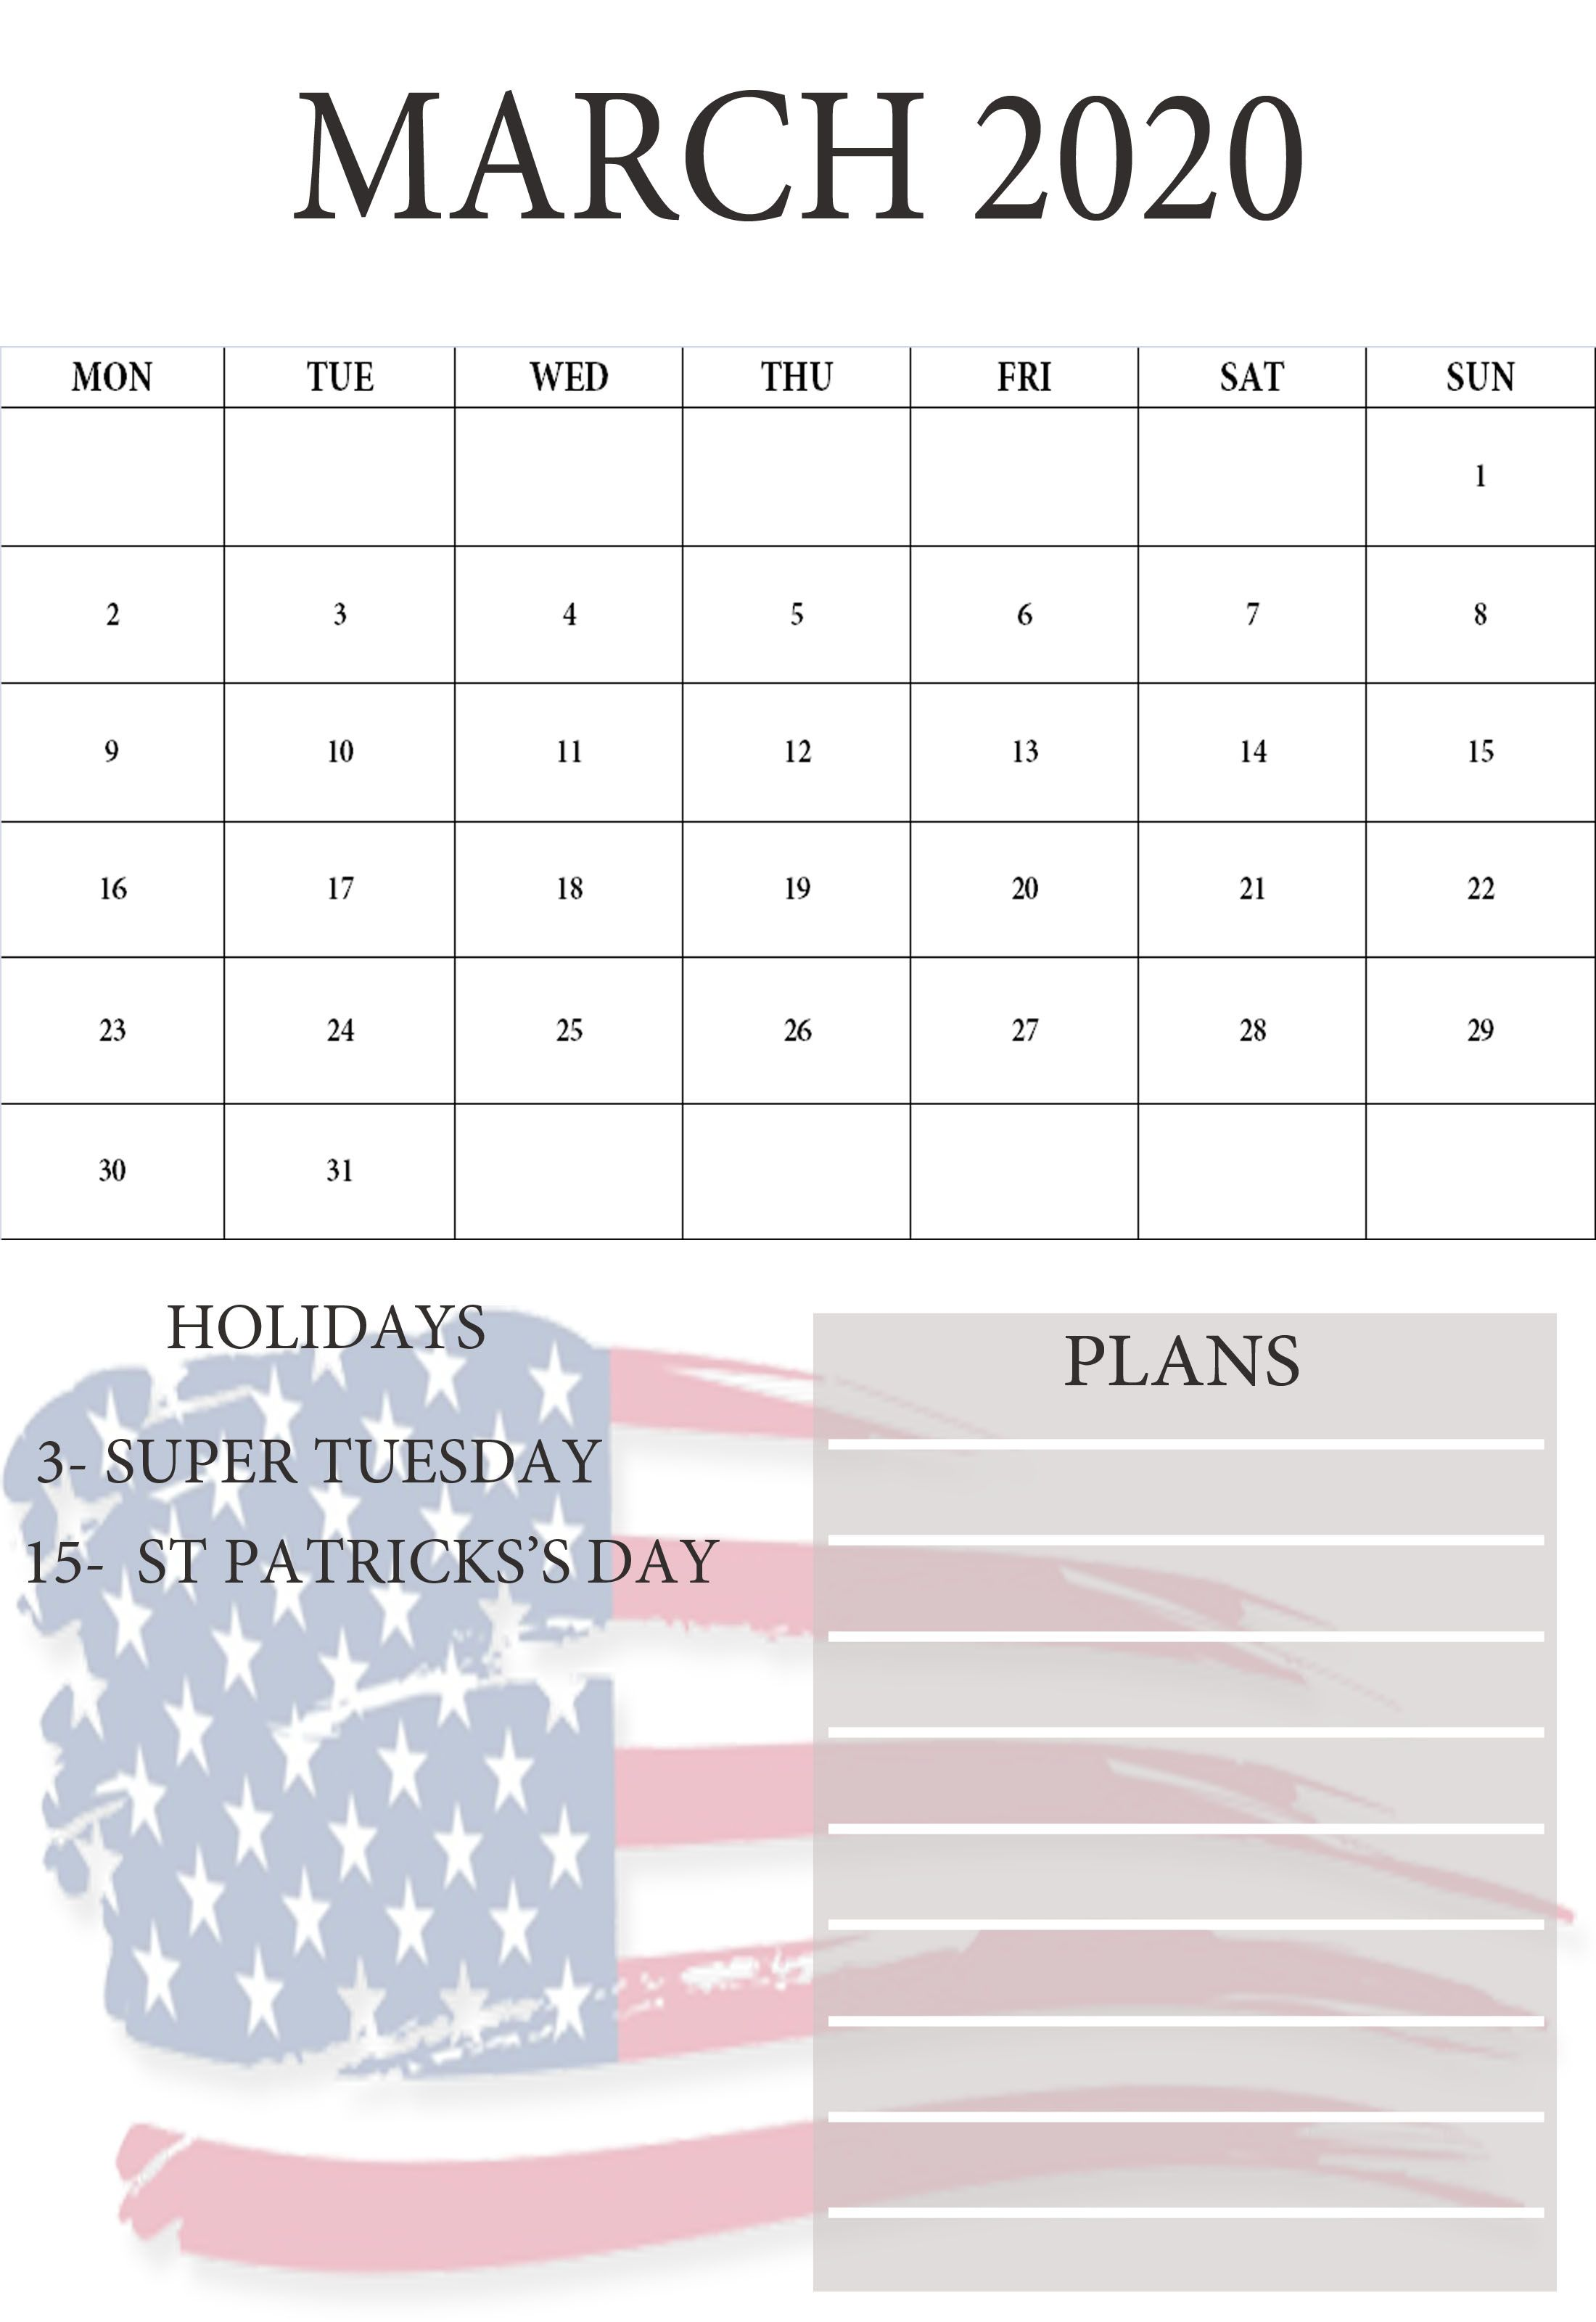 Here We Are Share 2020 March Month Calendar With Usa Holidays Or